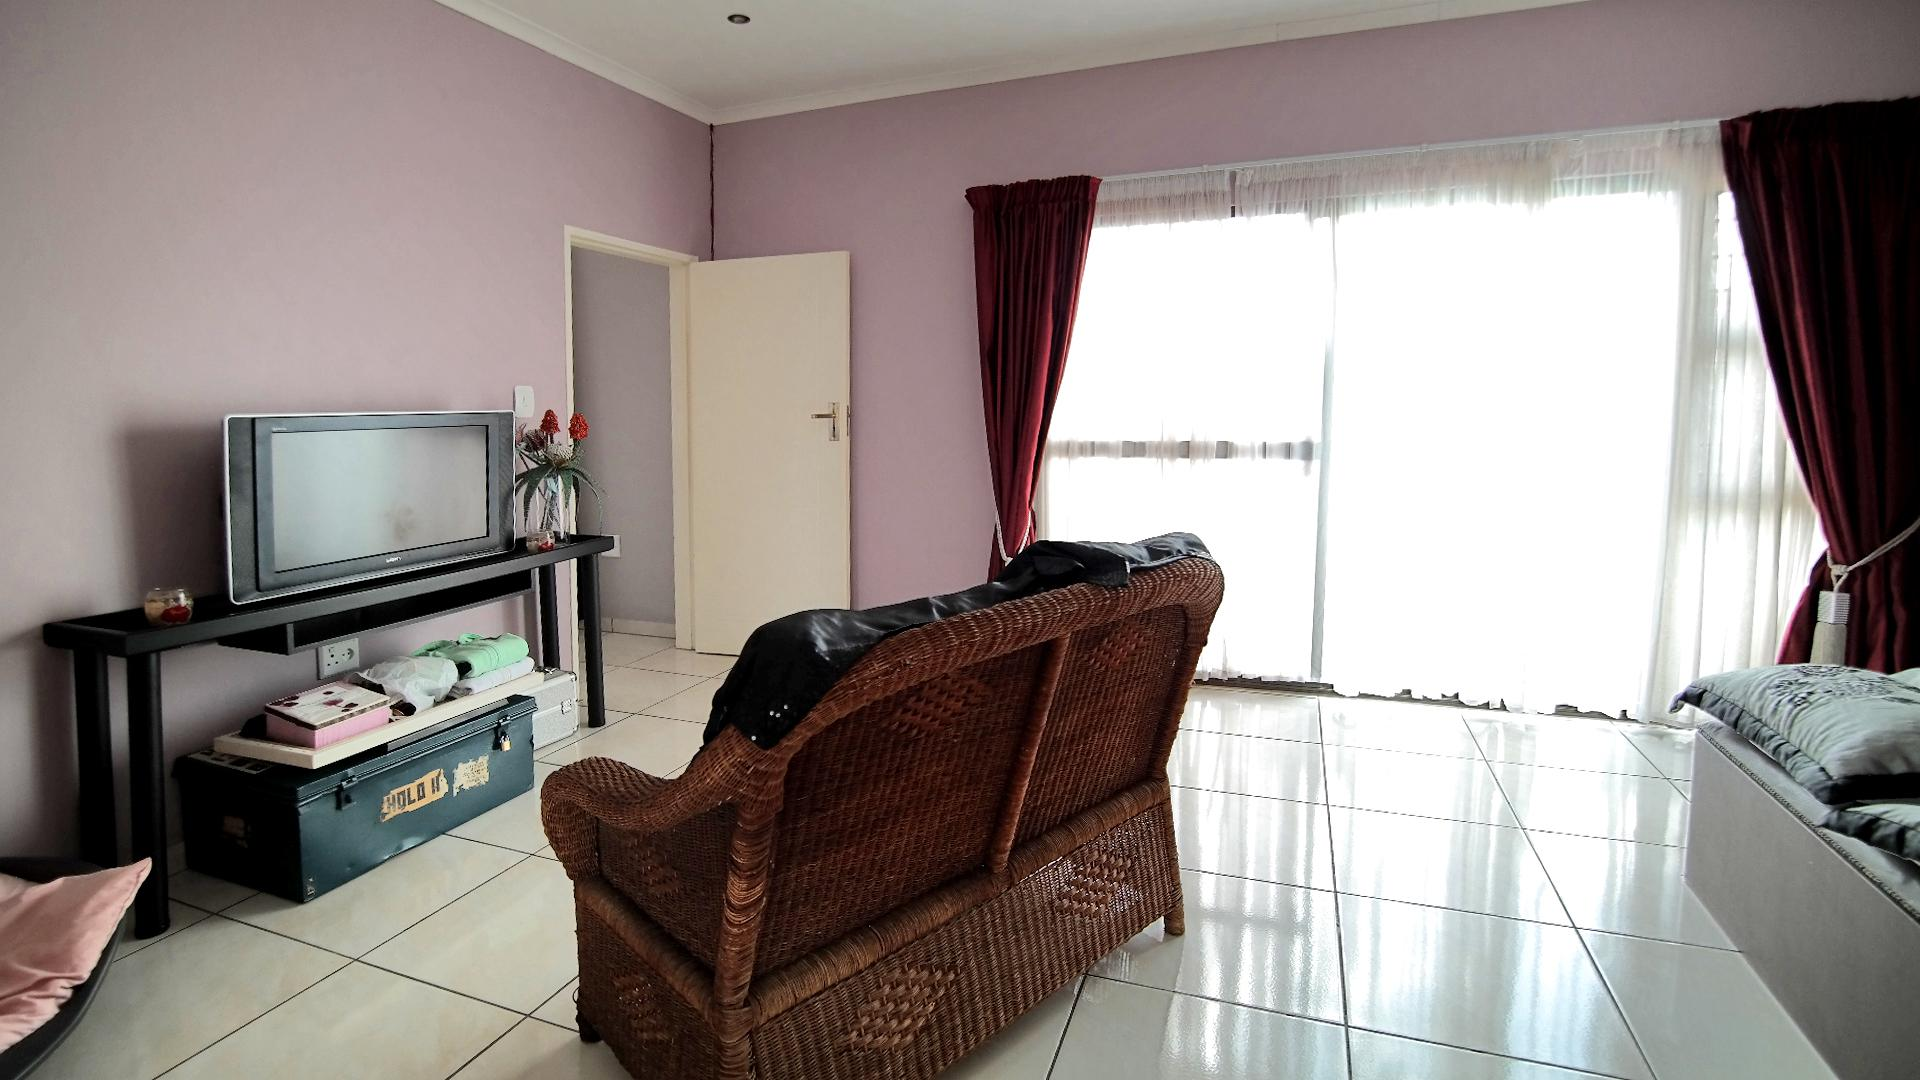 3 Bedroom House for sale in Montana ENT0066308 : photo#24